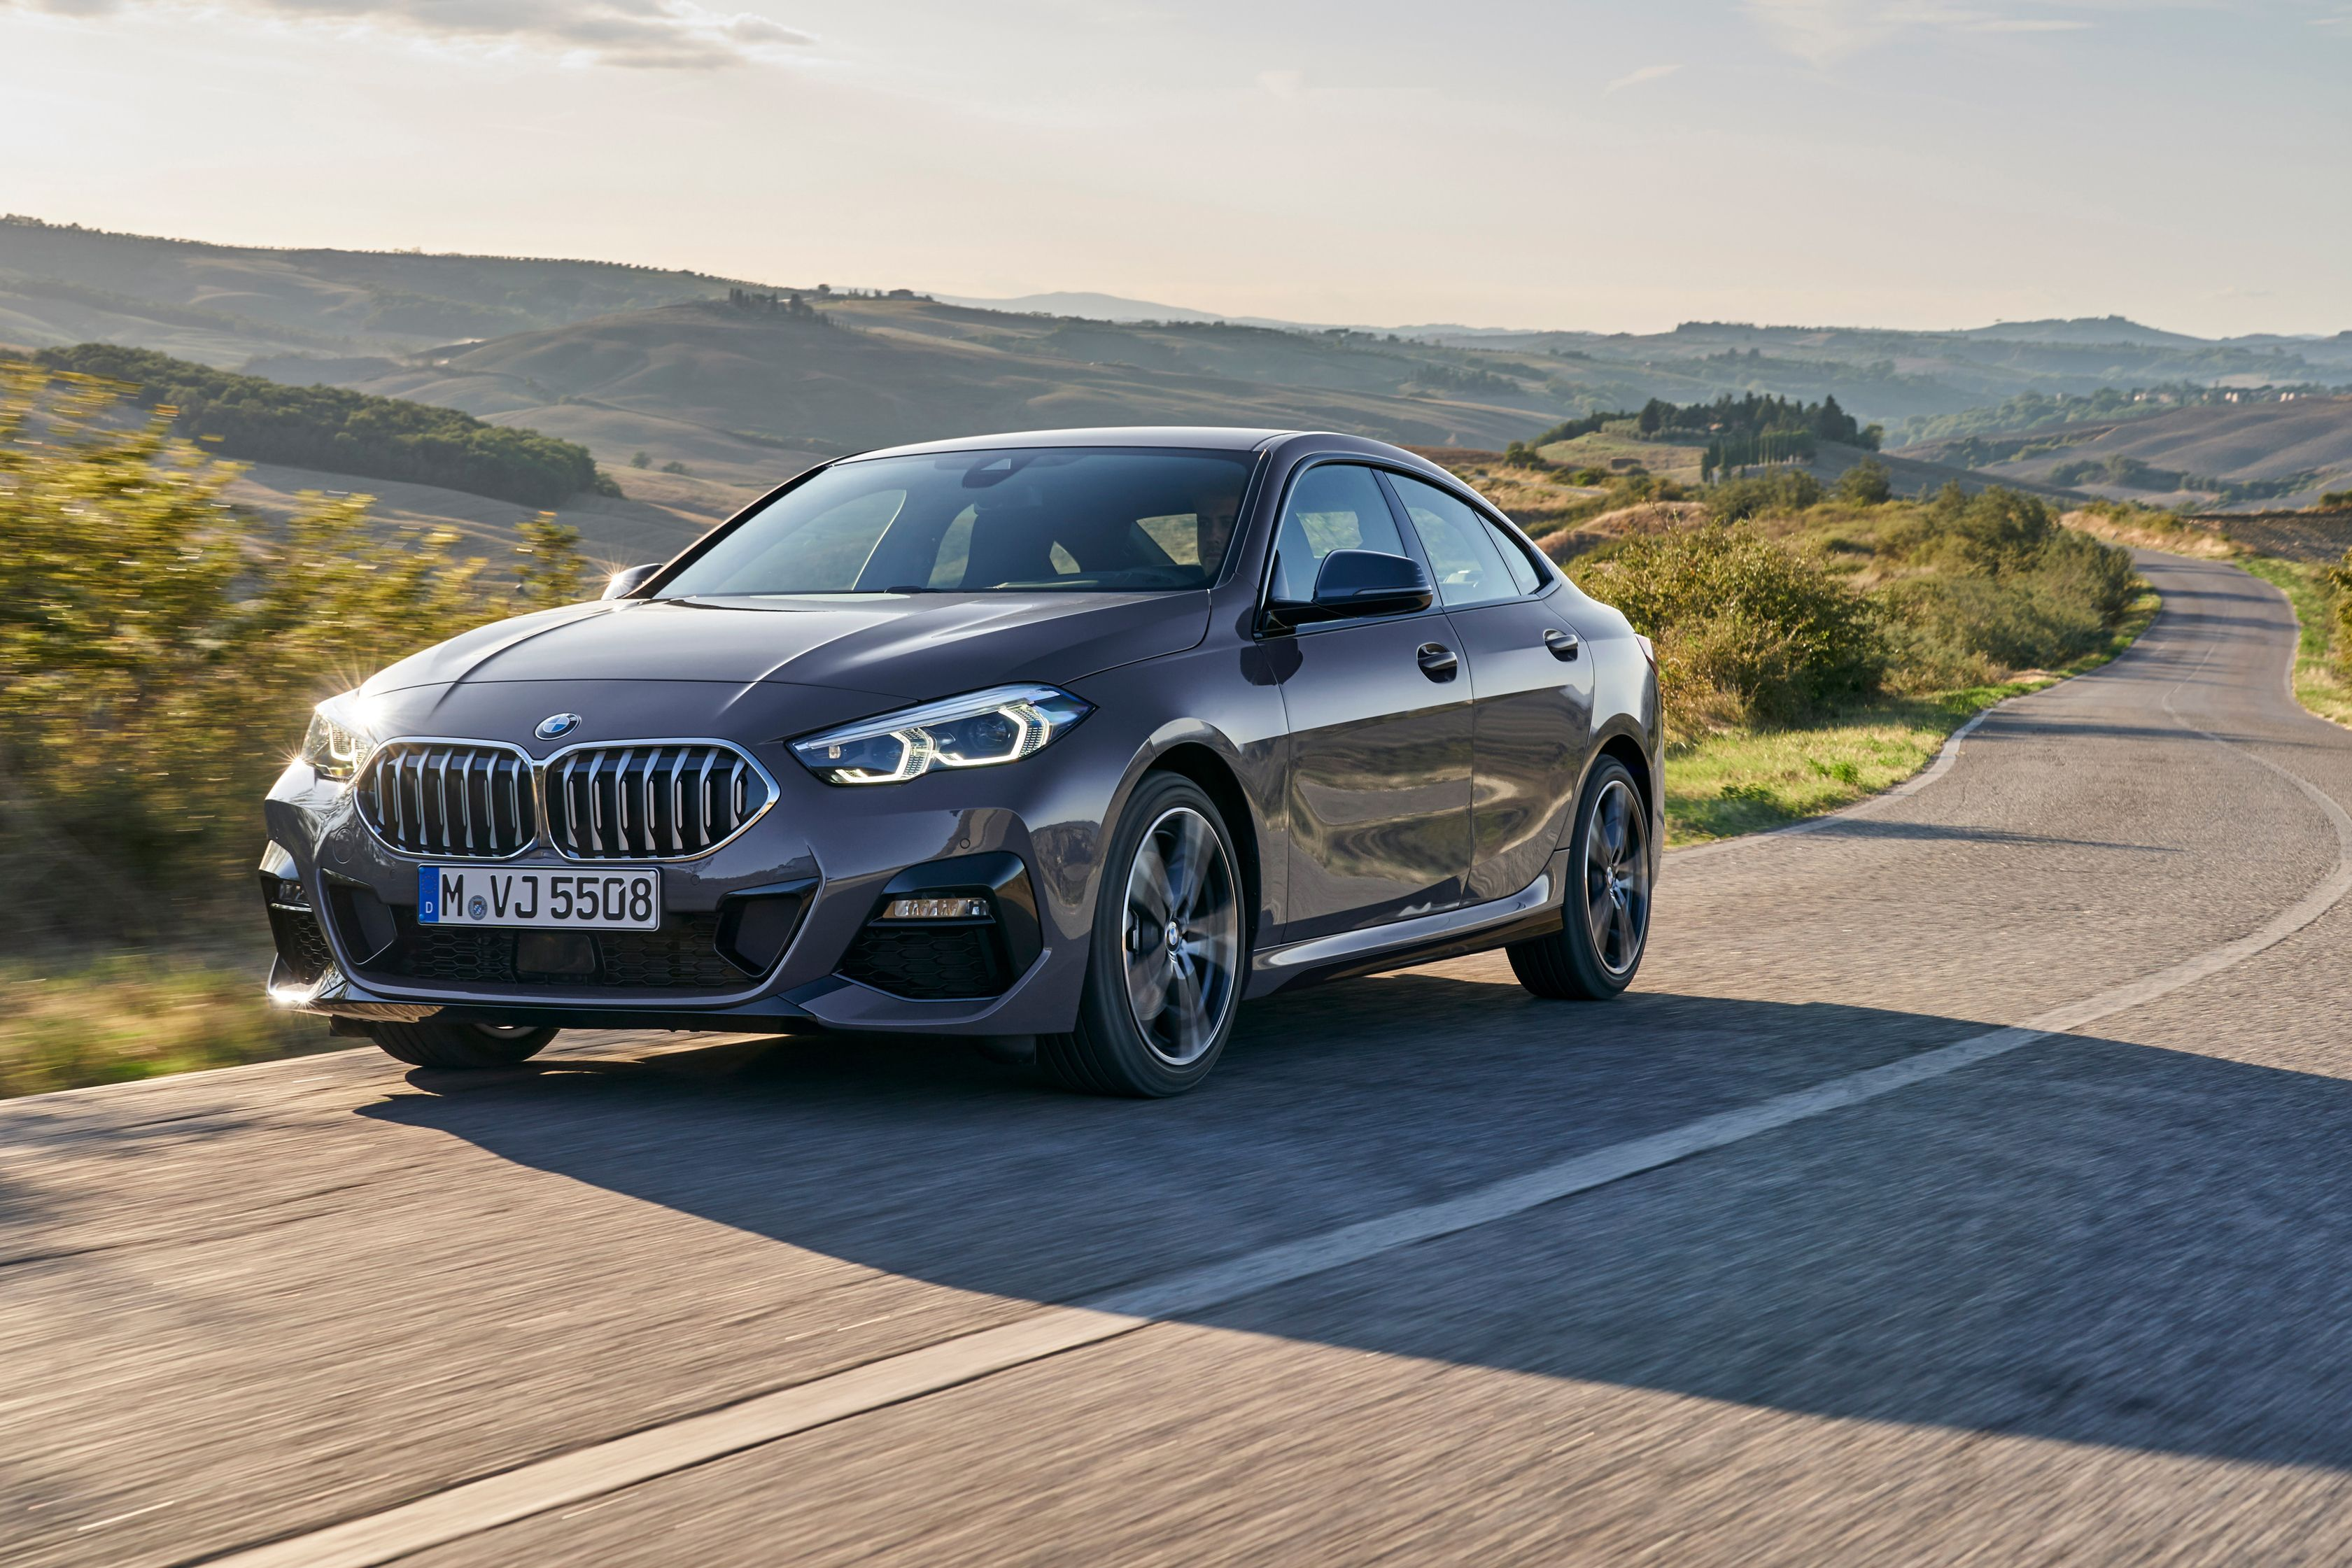 The Bmw 228i Xdrive Gran Coupe Is Not What I Was Expecting